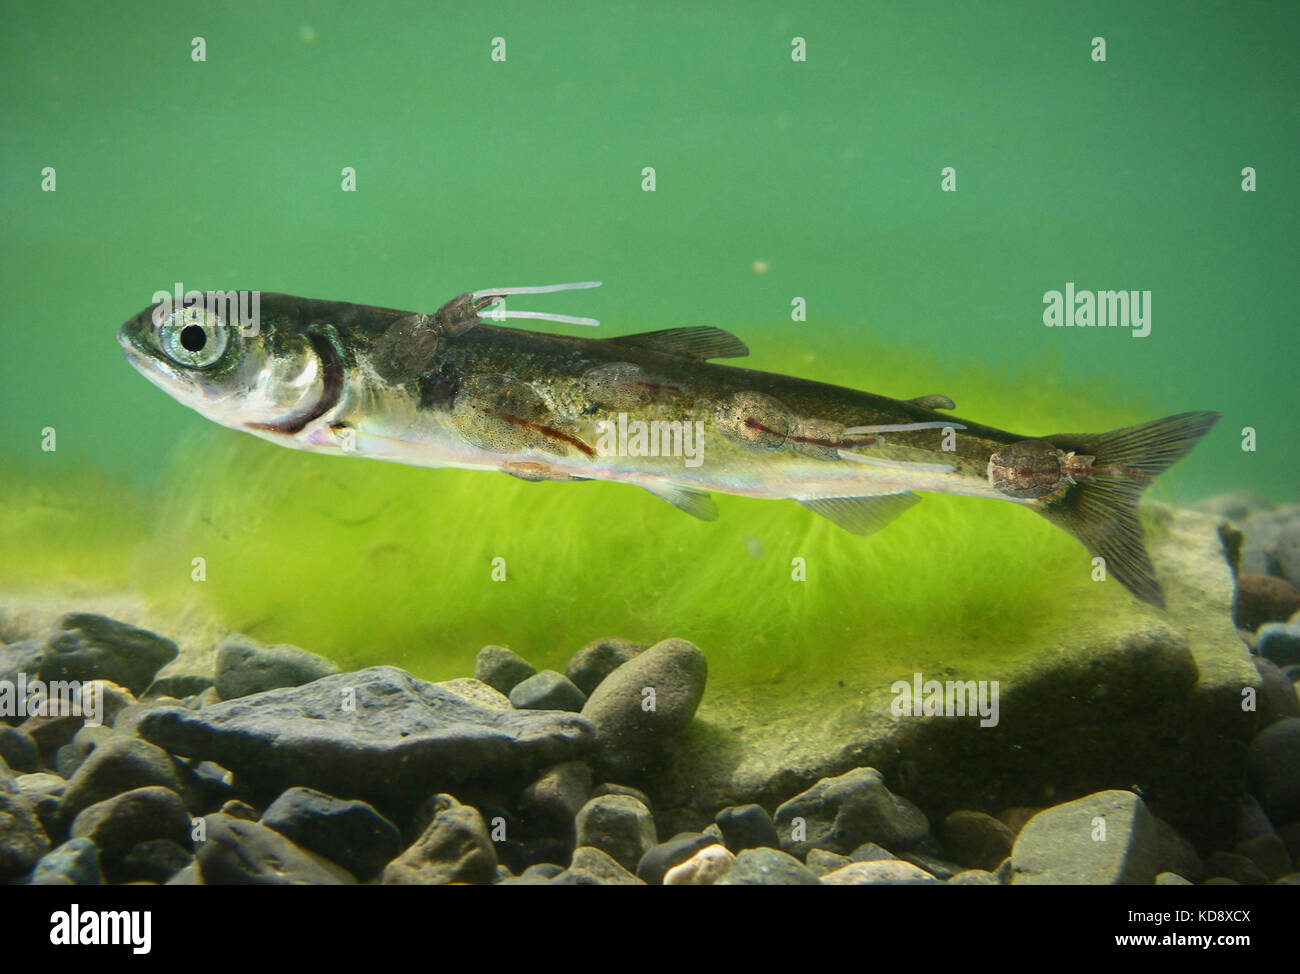 Sea Lice Stock Photos & Sea Lice Stock Images - Alamy